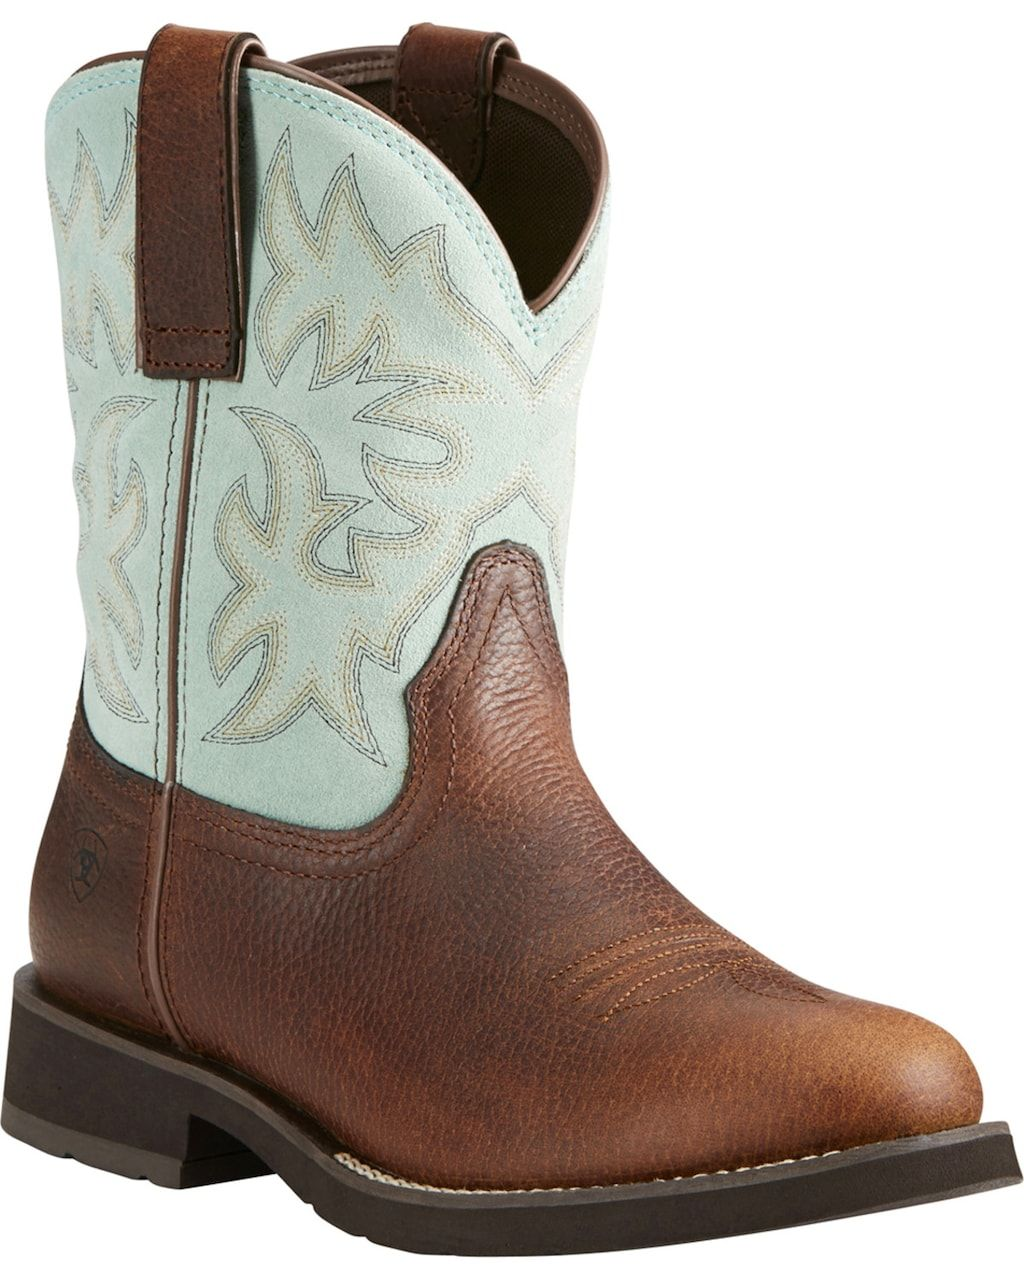 Ariat Women's Lily Short Western Boots